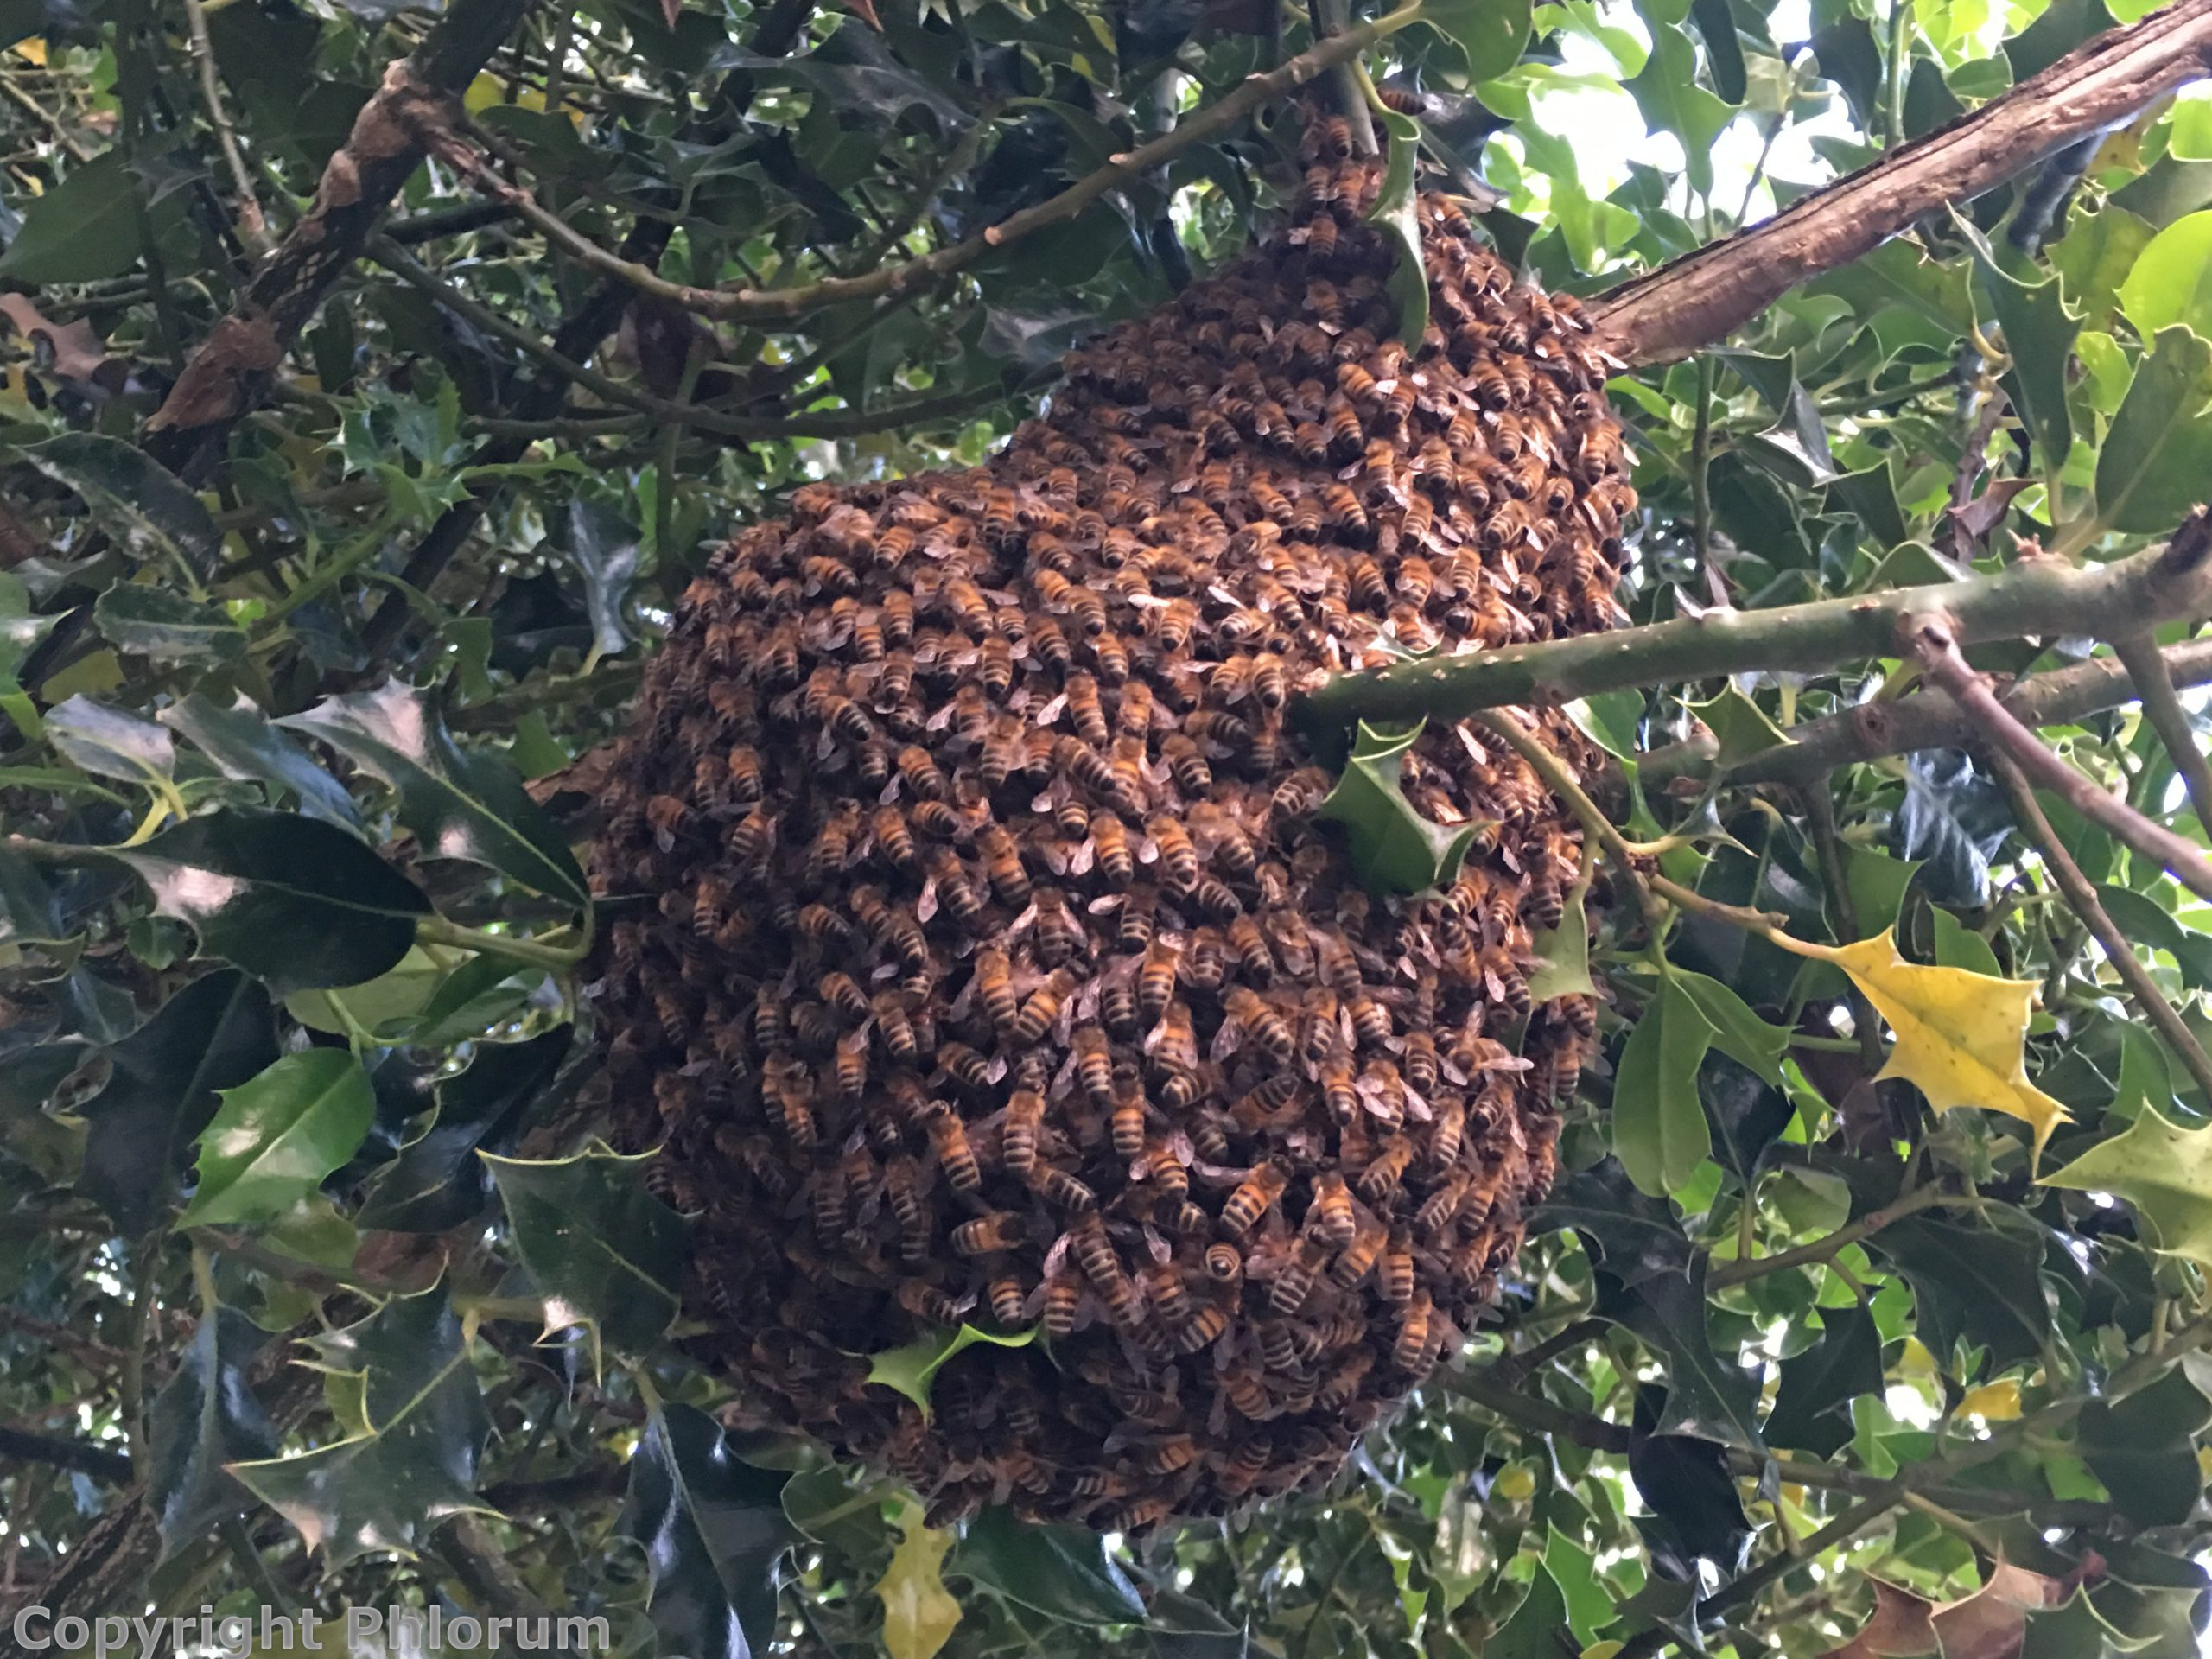 Swarming bees on holly tree